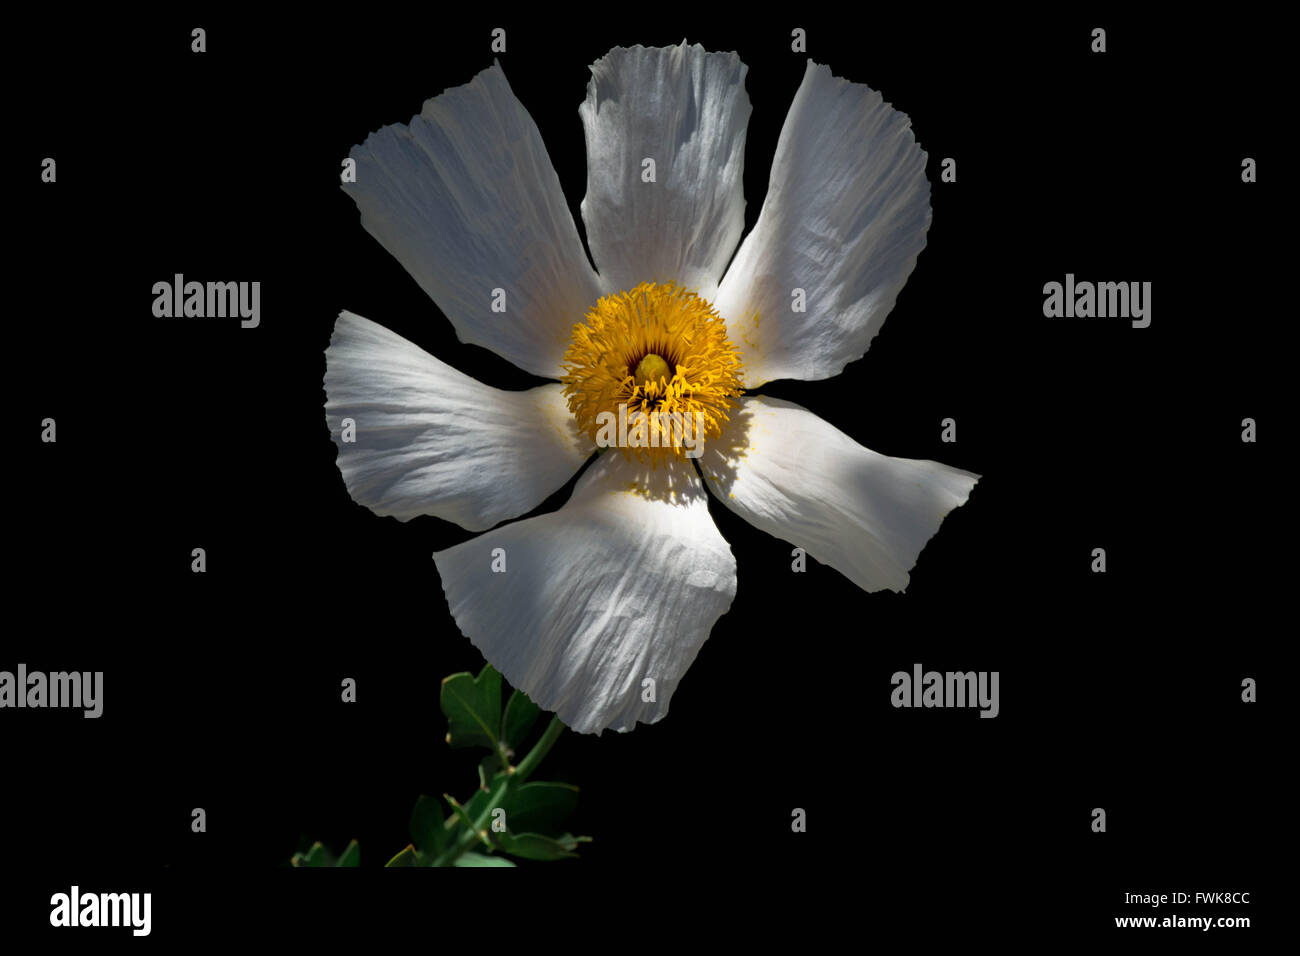 Close Up Of White Flower Blooming In Park At Night Stock Photo